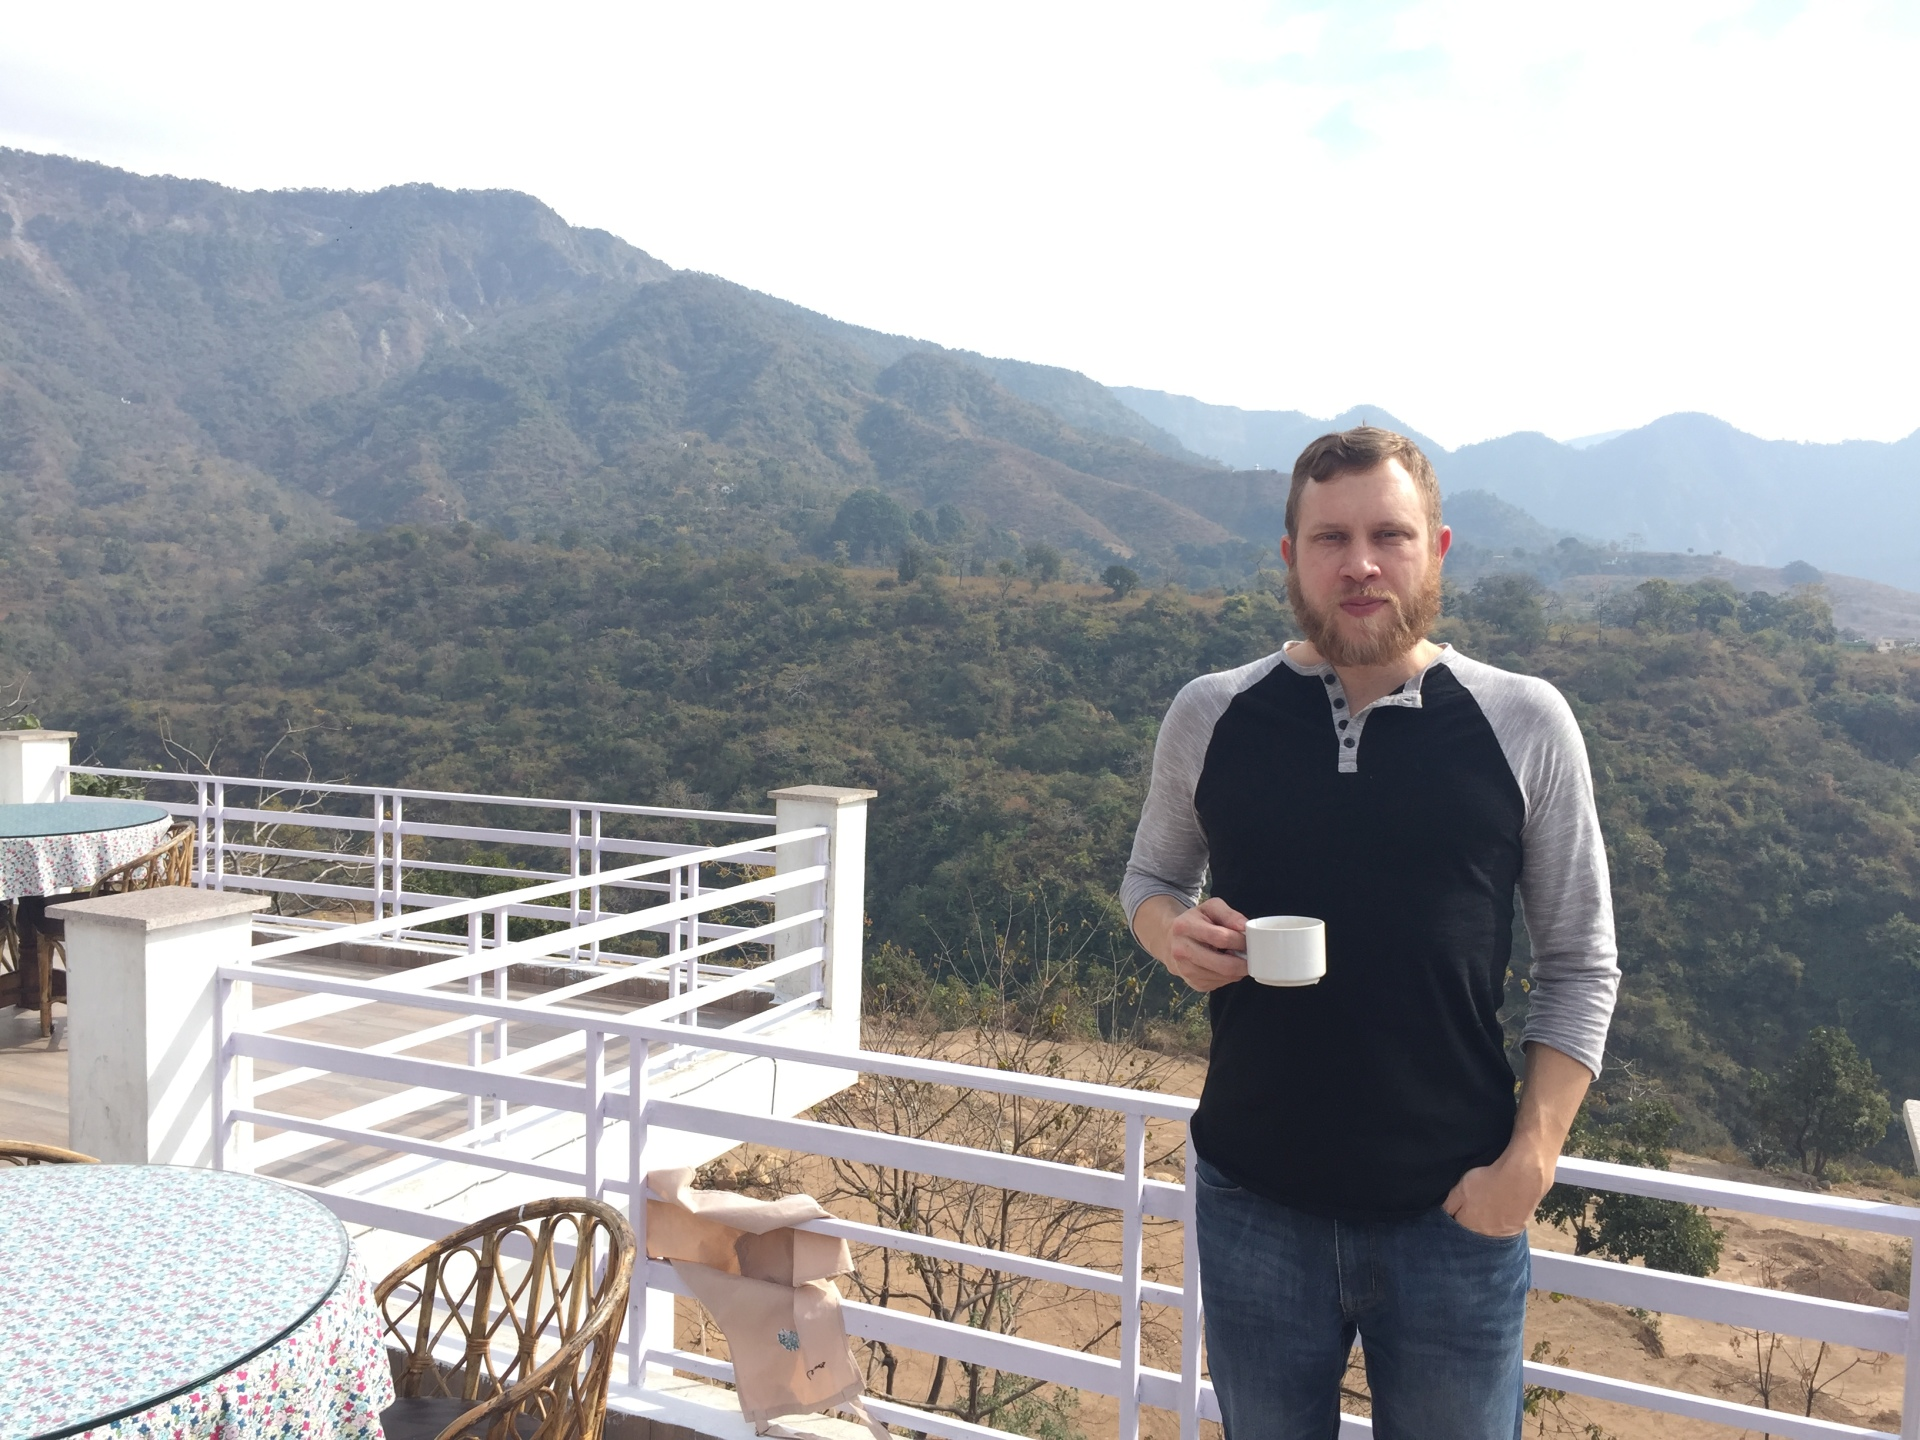 That's me at the coffee shop, with the Himalayas directly behind me.